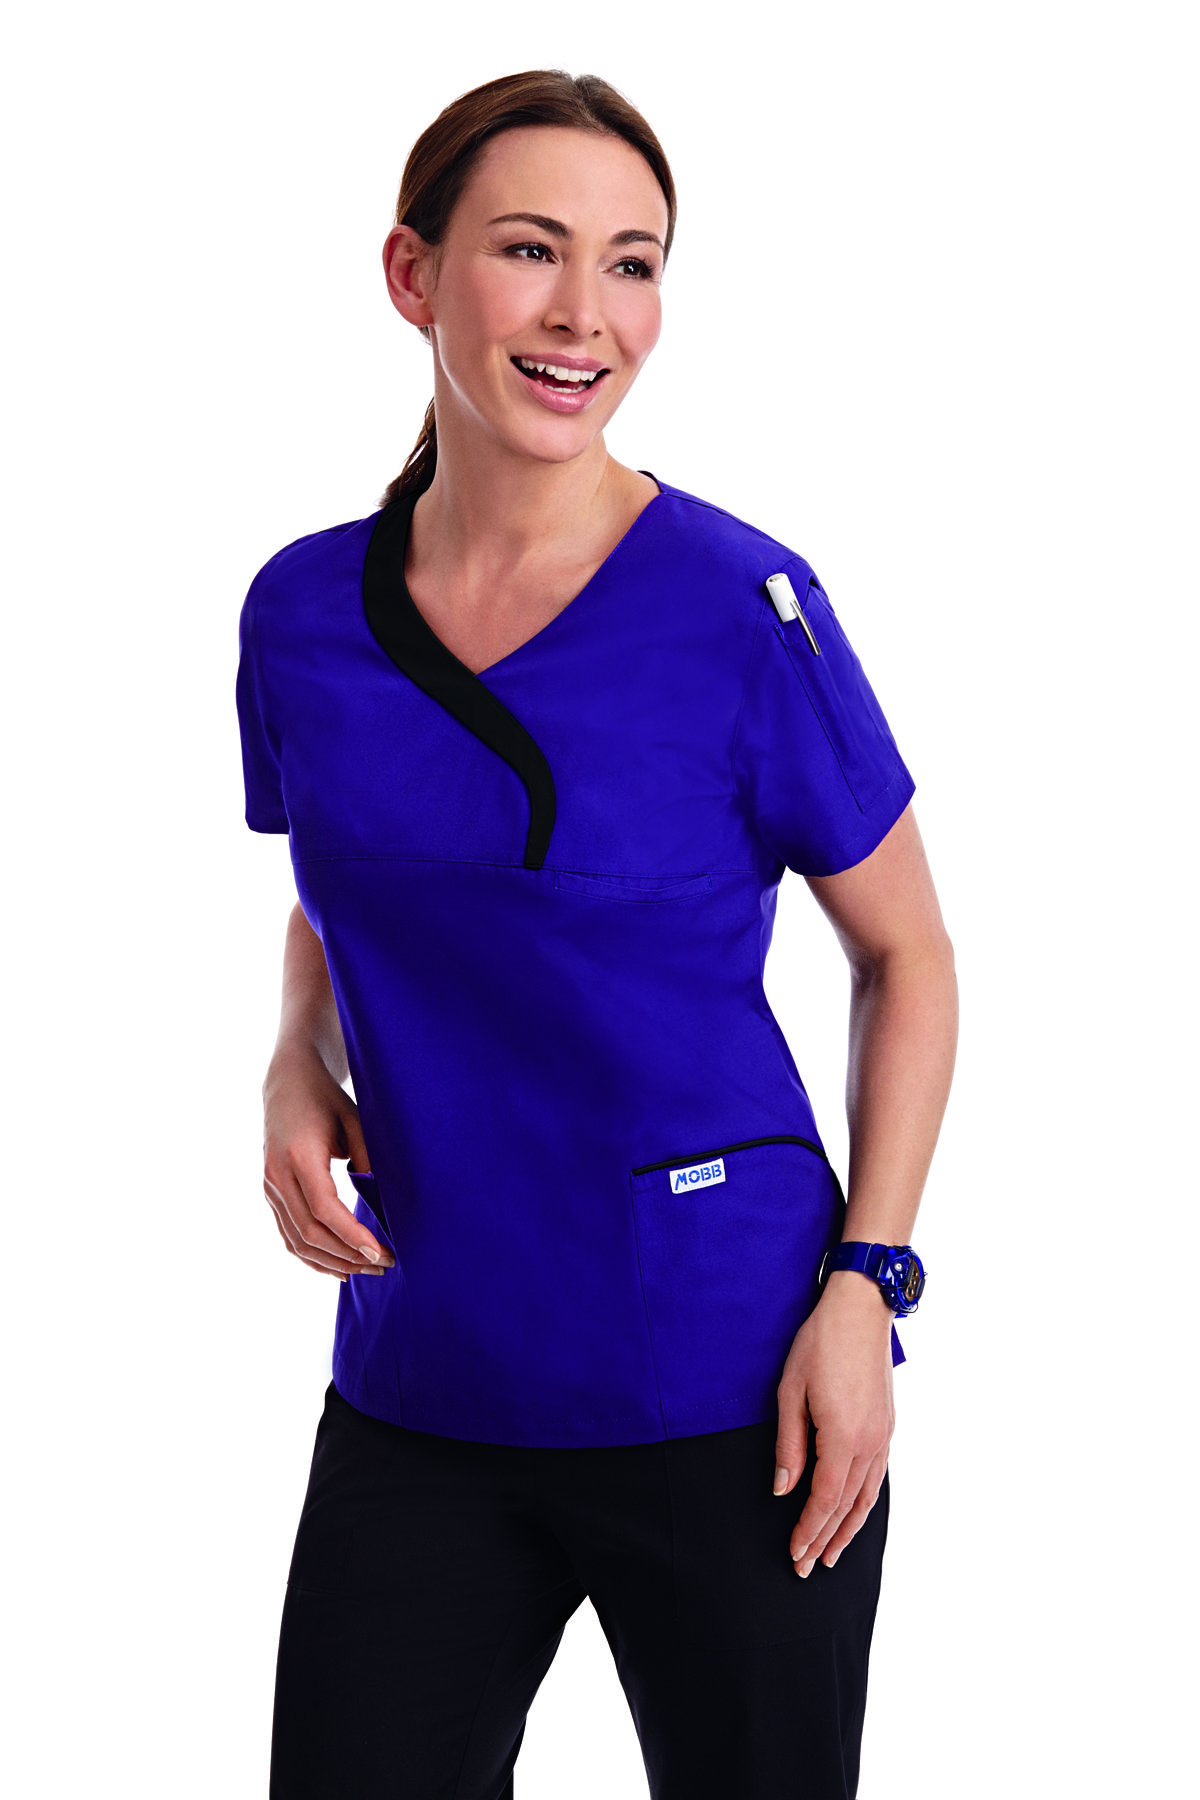 b54a9516bc7 Solid Color & Print Scrubs Tops | Nurse Uniforms | Medical Wear | Dixie  Uniforms Canada